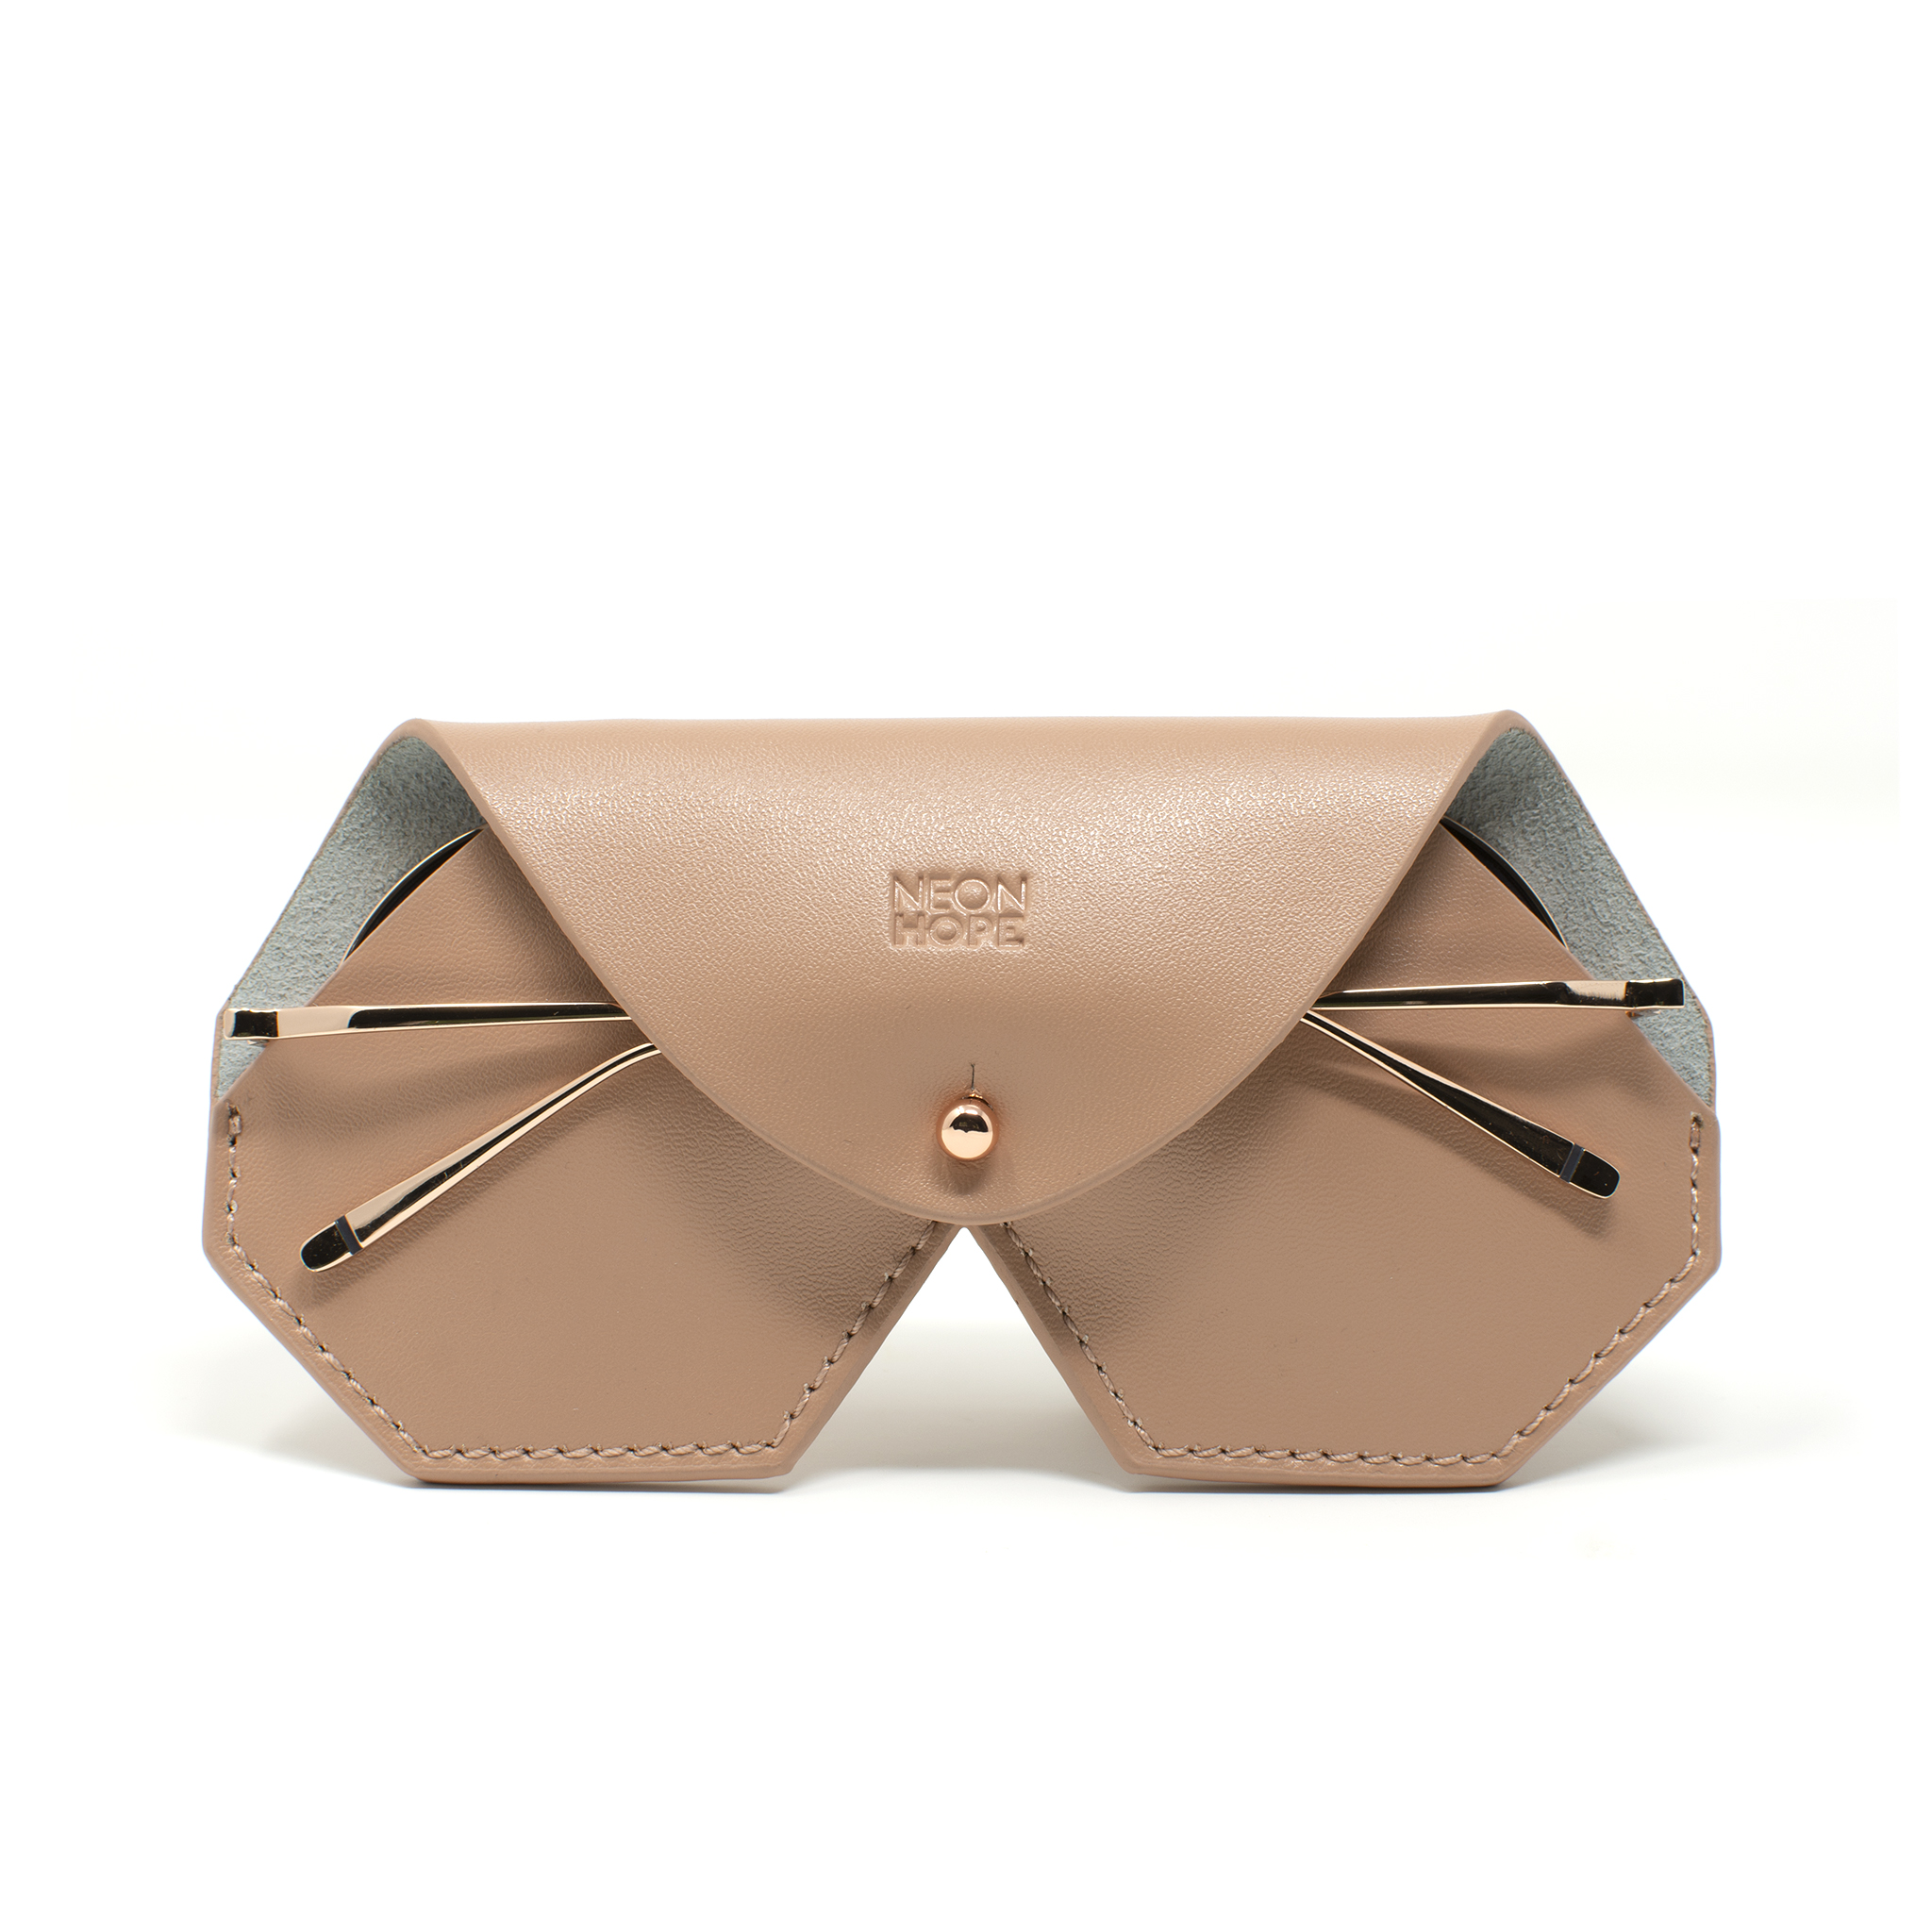 Sulis - Gunmetal Grey / Rose Gold (limited edition) by Neon Hope on curated-crowd.com